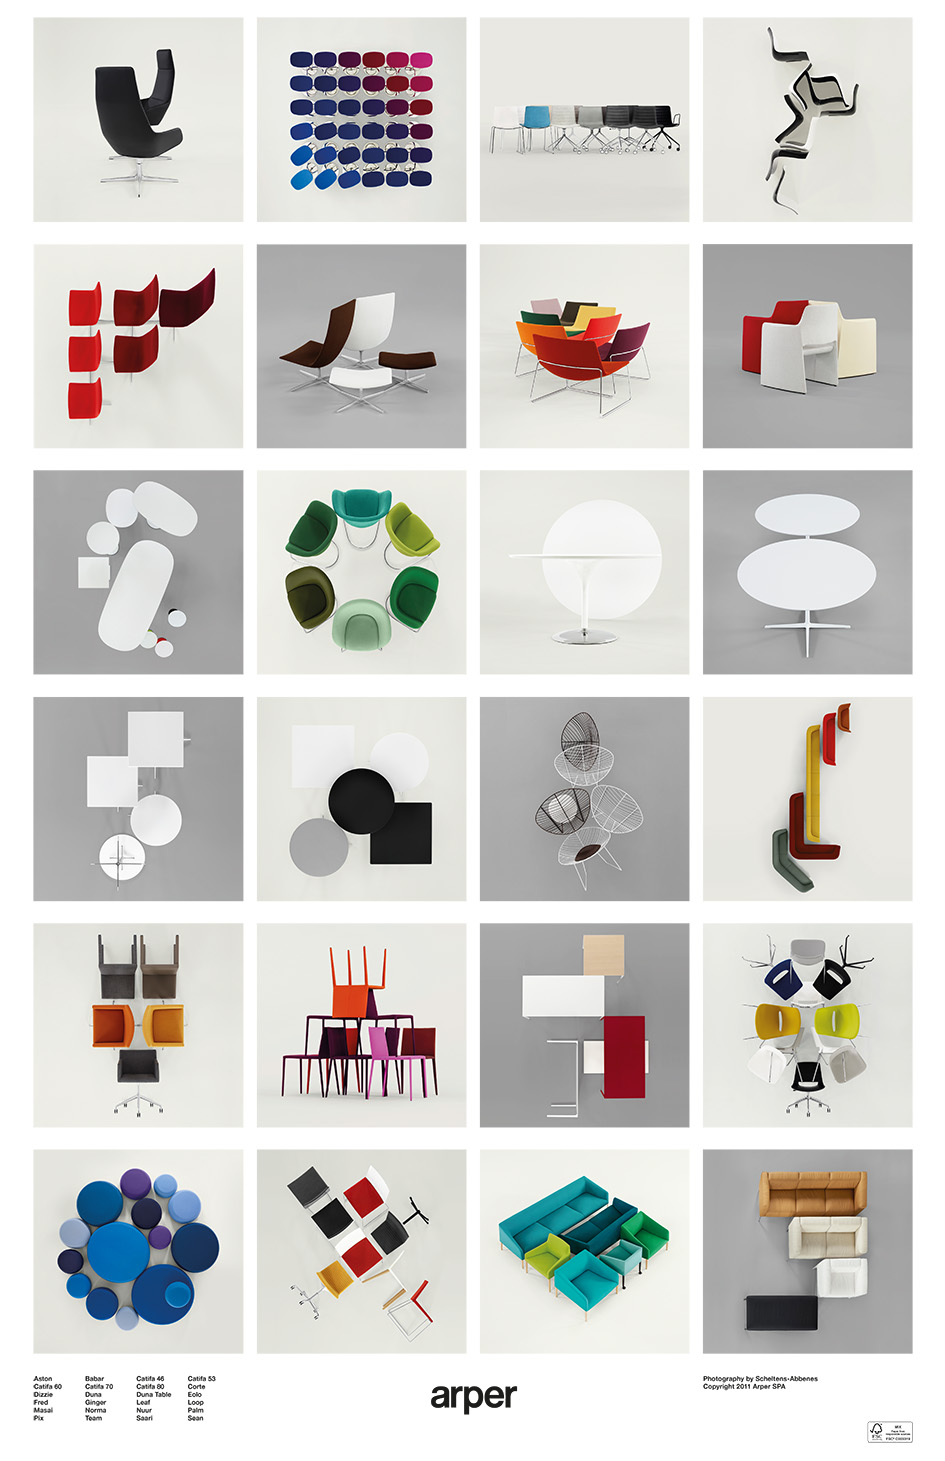 Arper collections poster - photo Scheltens & Abbenes